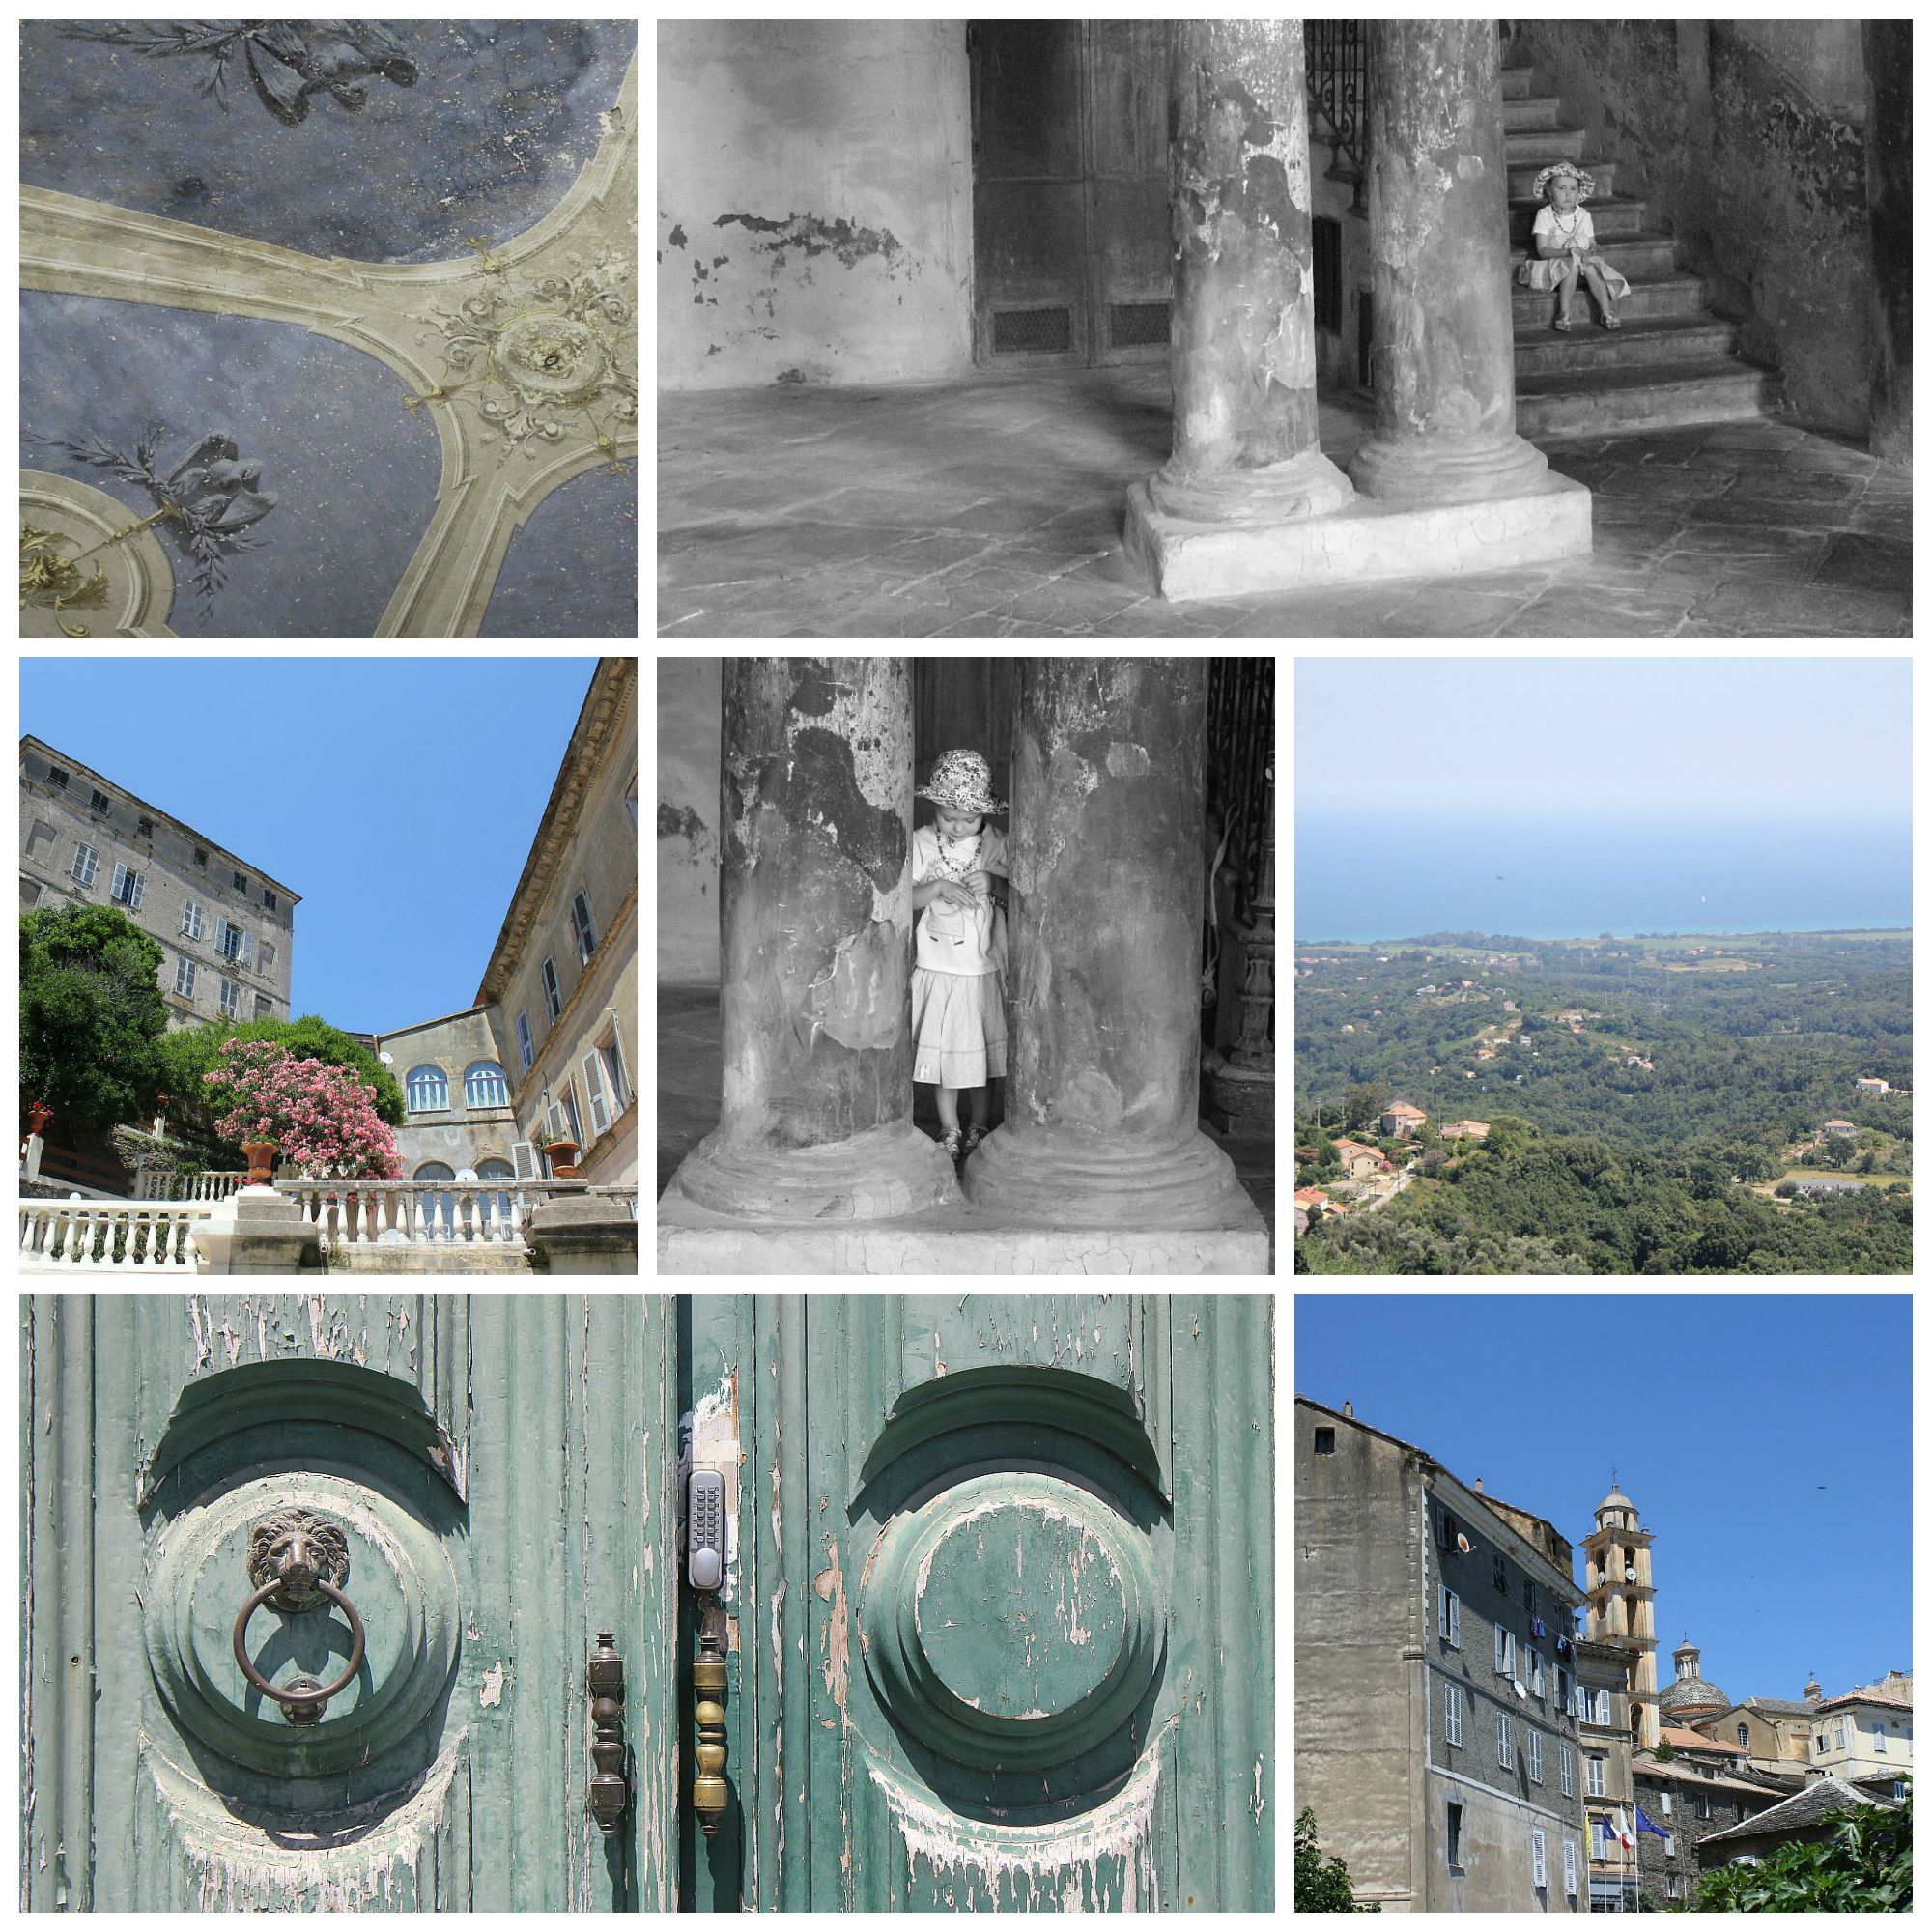 PODcast - Cervione collage 4